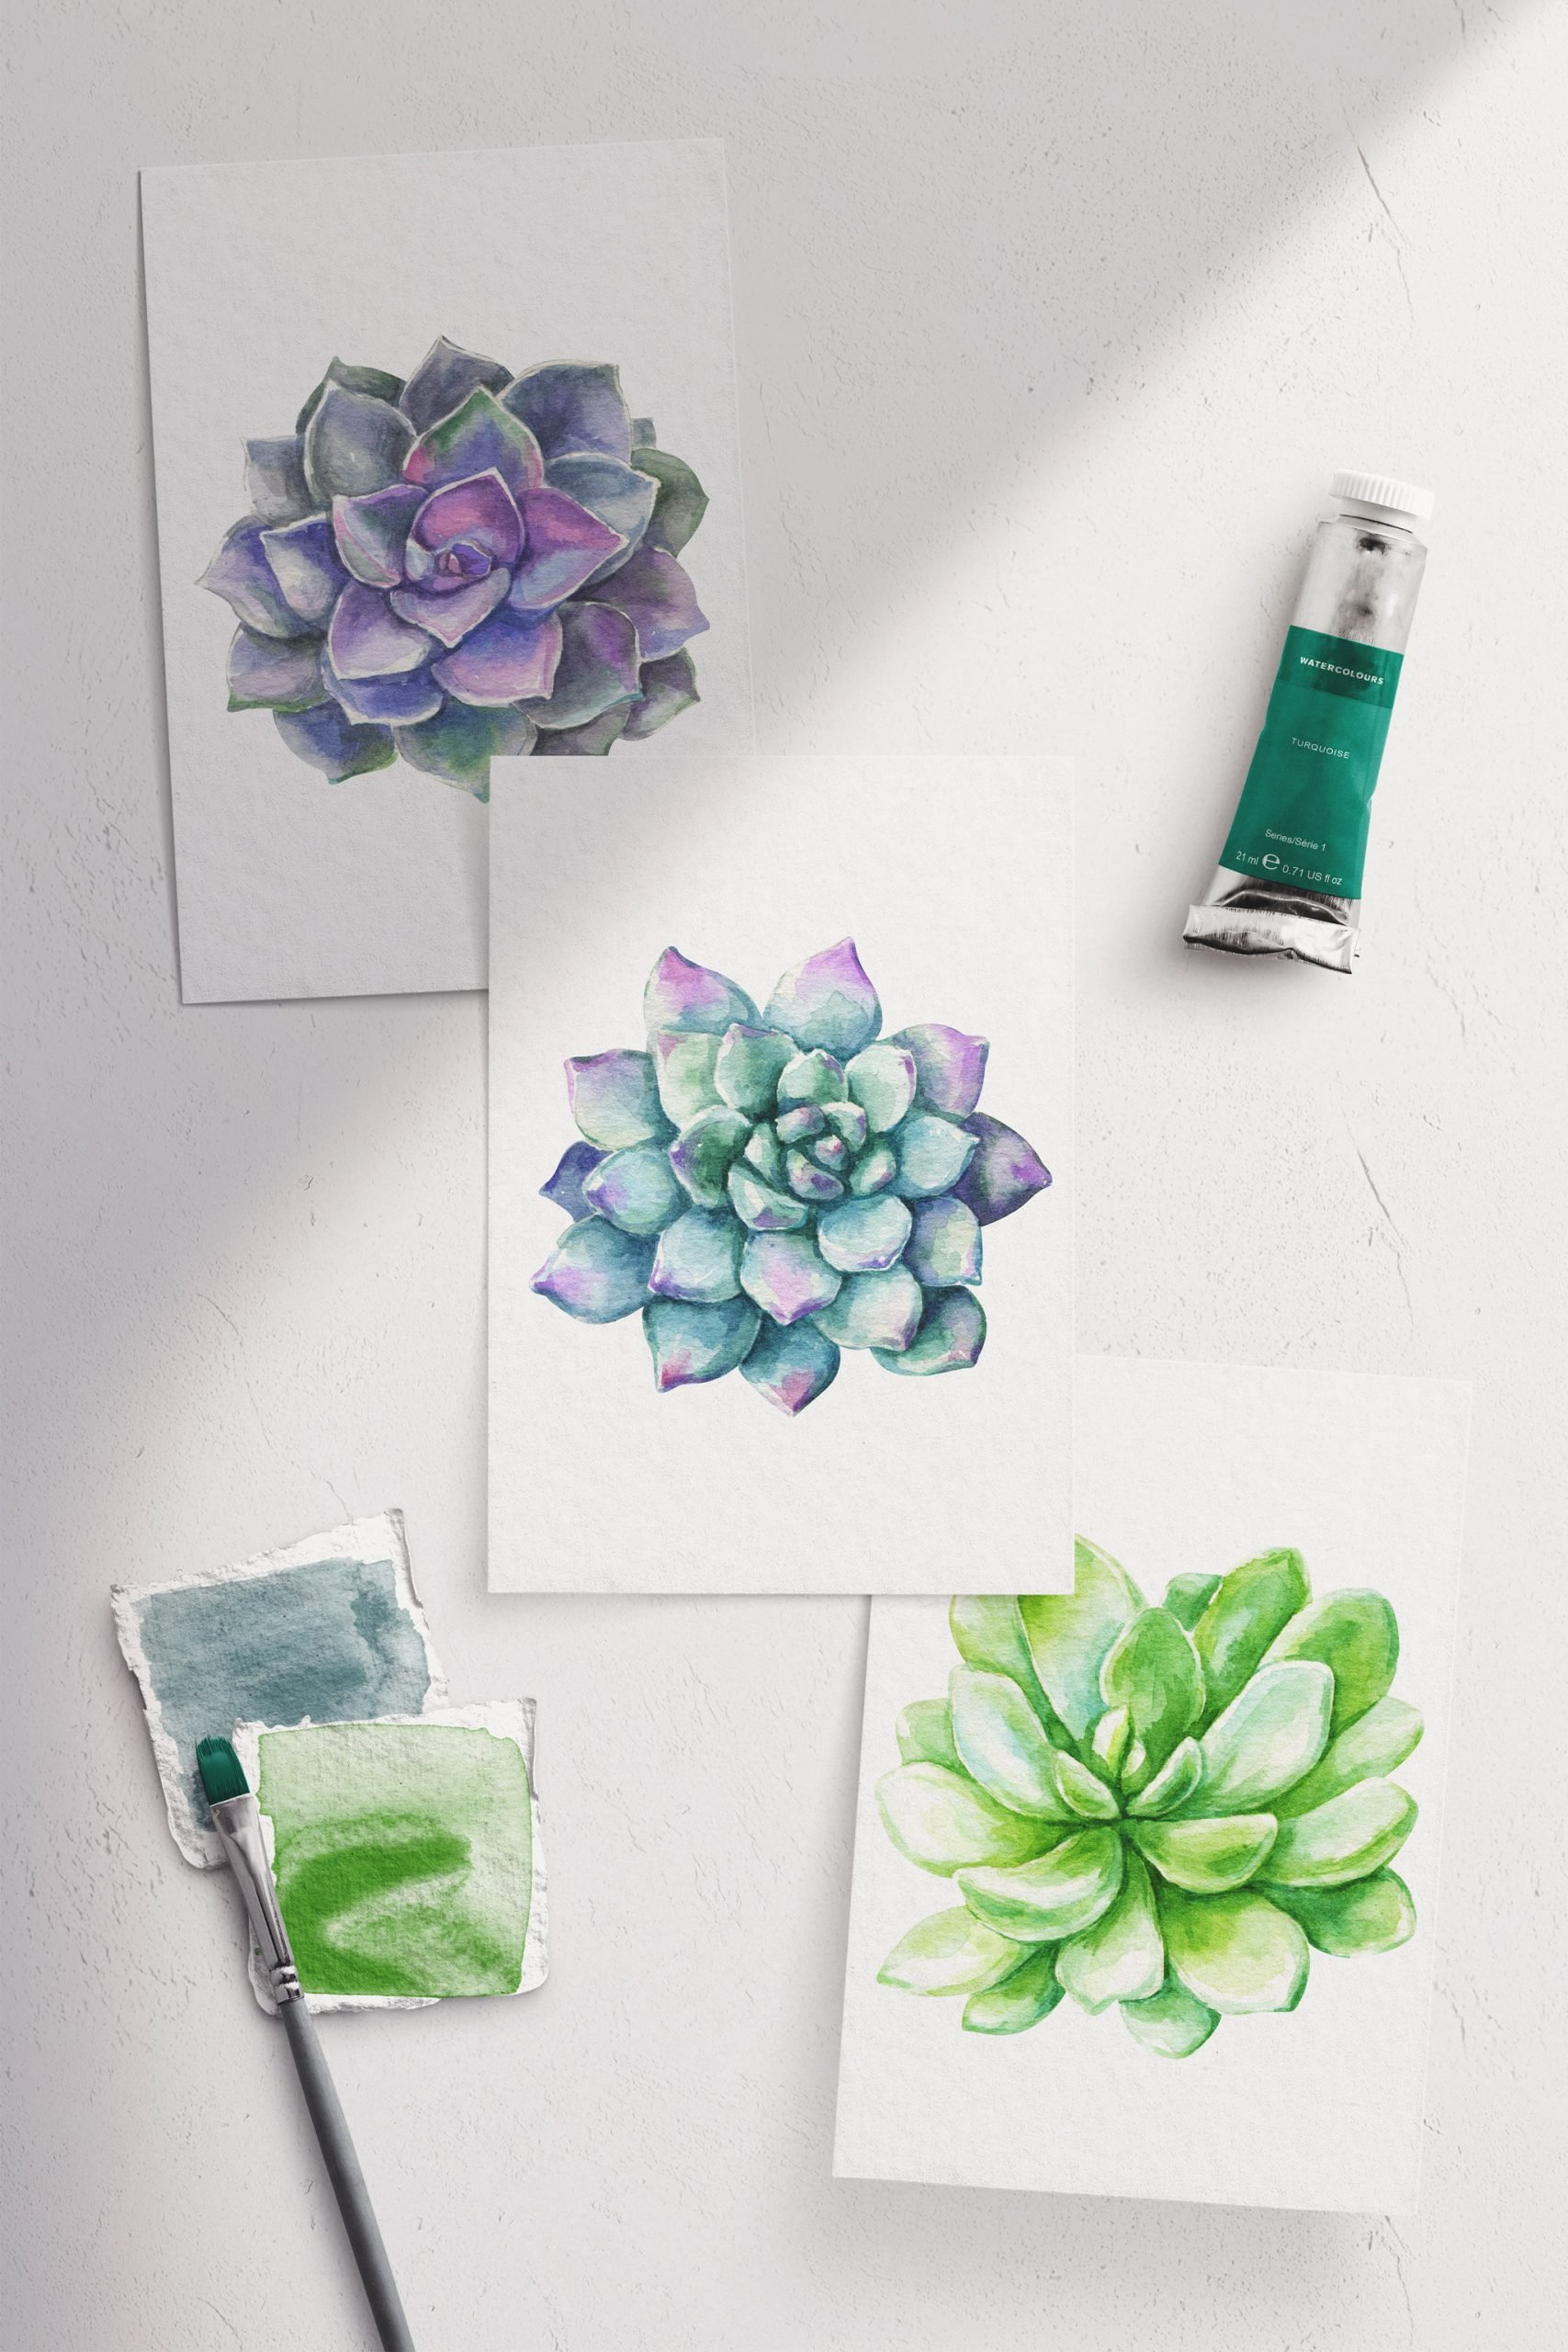 watercolor mockup scene creator 5 image03 scaled